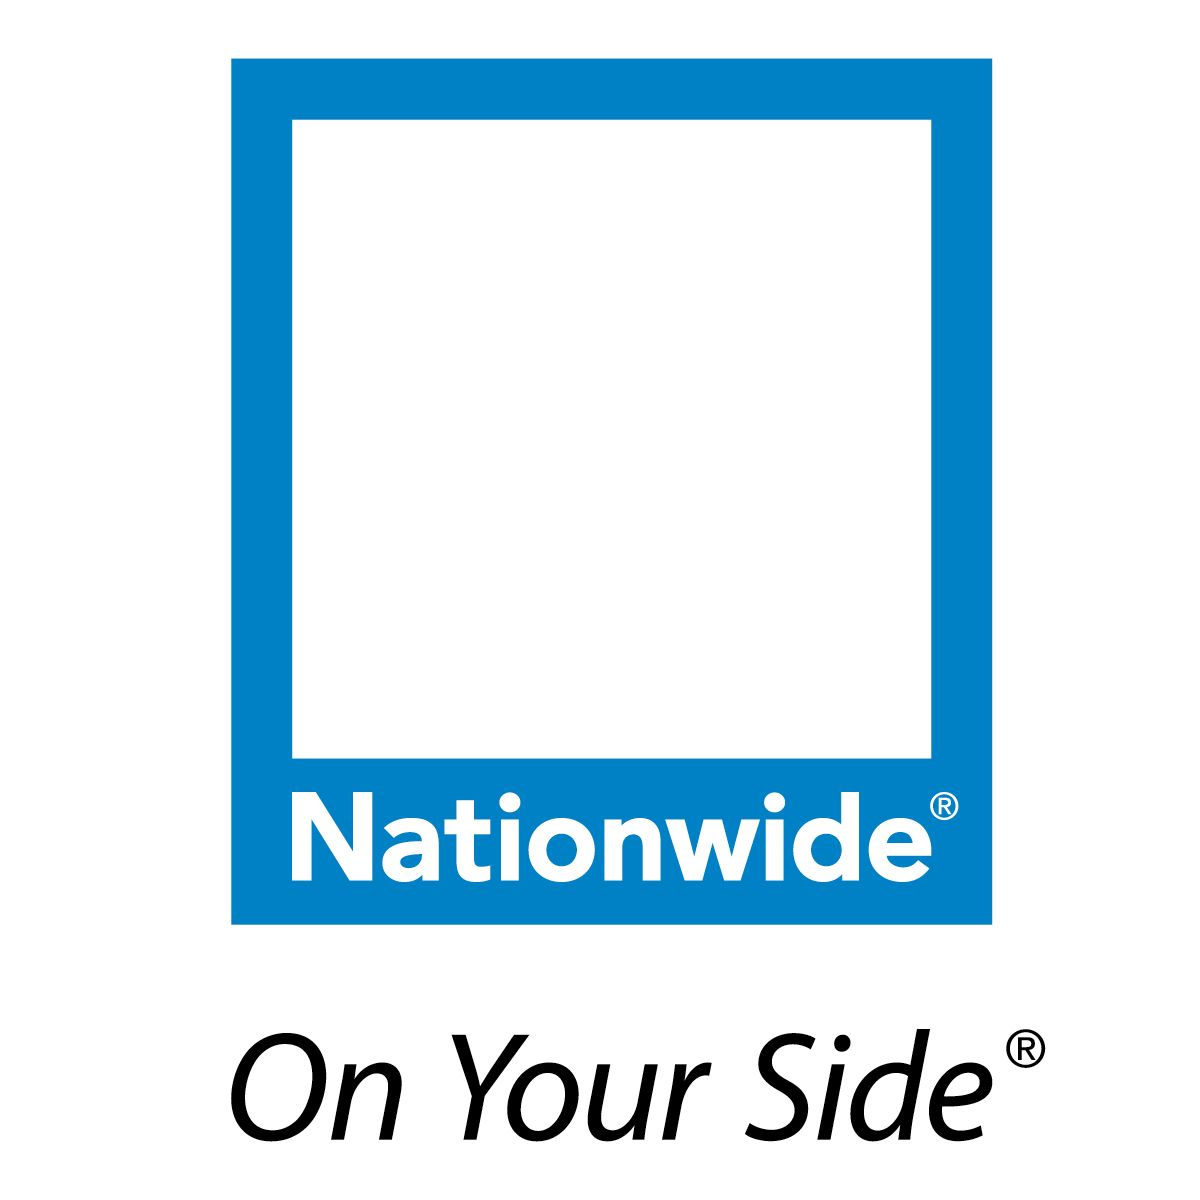 Deal Nationwide Offers A Good Student Discount On Auto Insurance For Drivers 16 To 24 They Must Be Full Affordable Car Insurance Mortgage Info Car Insurance